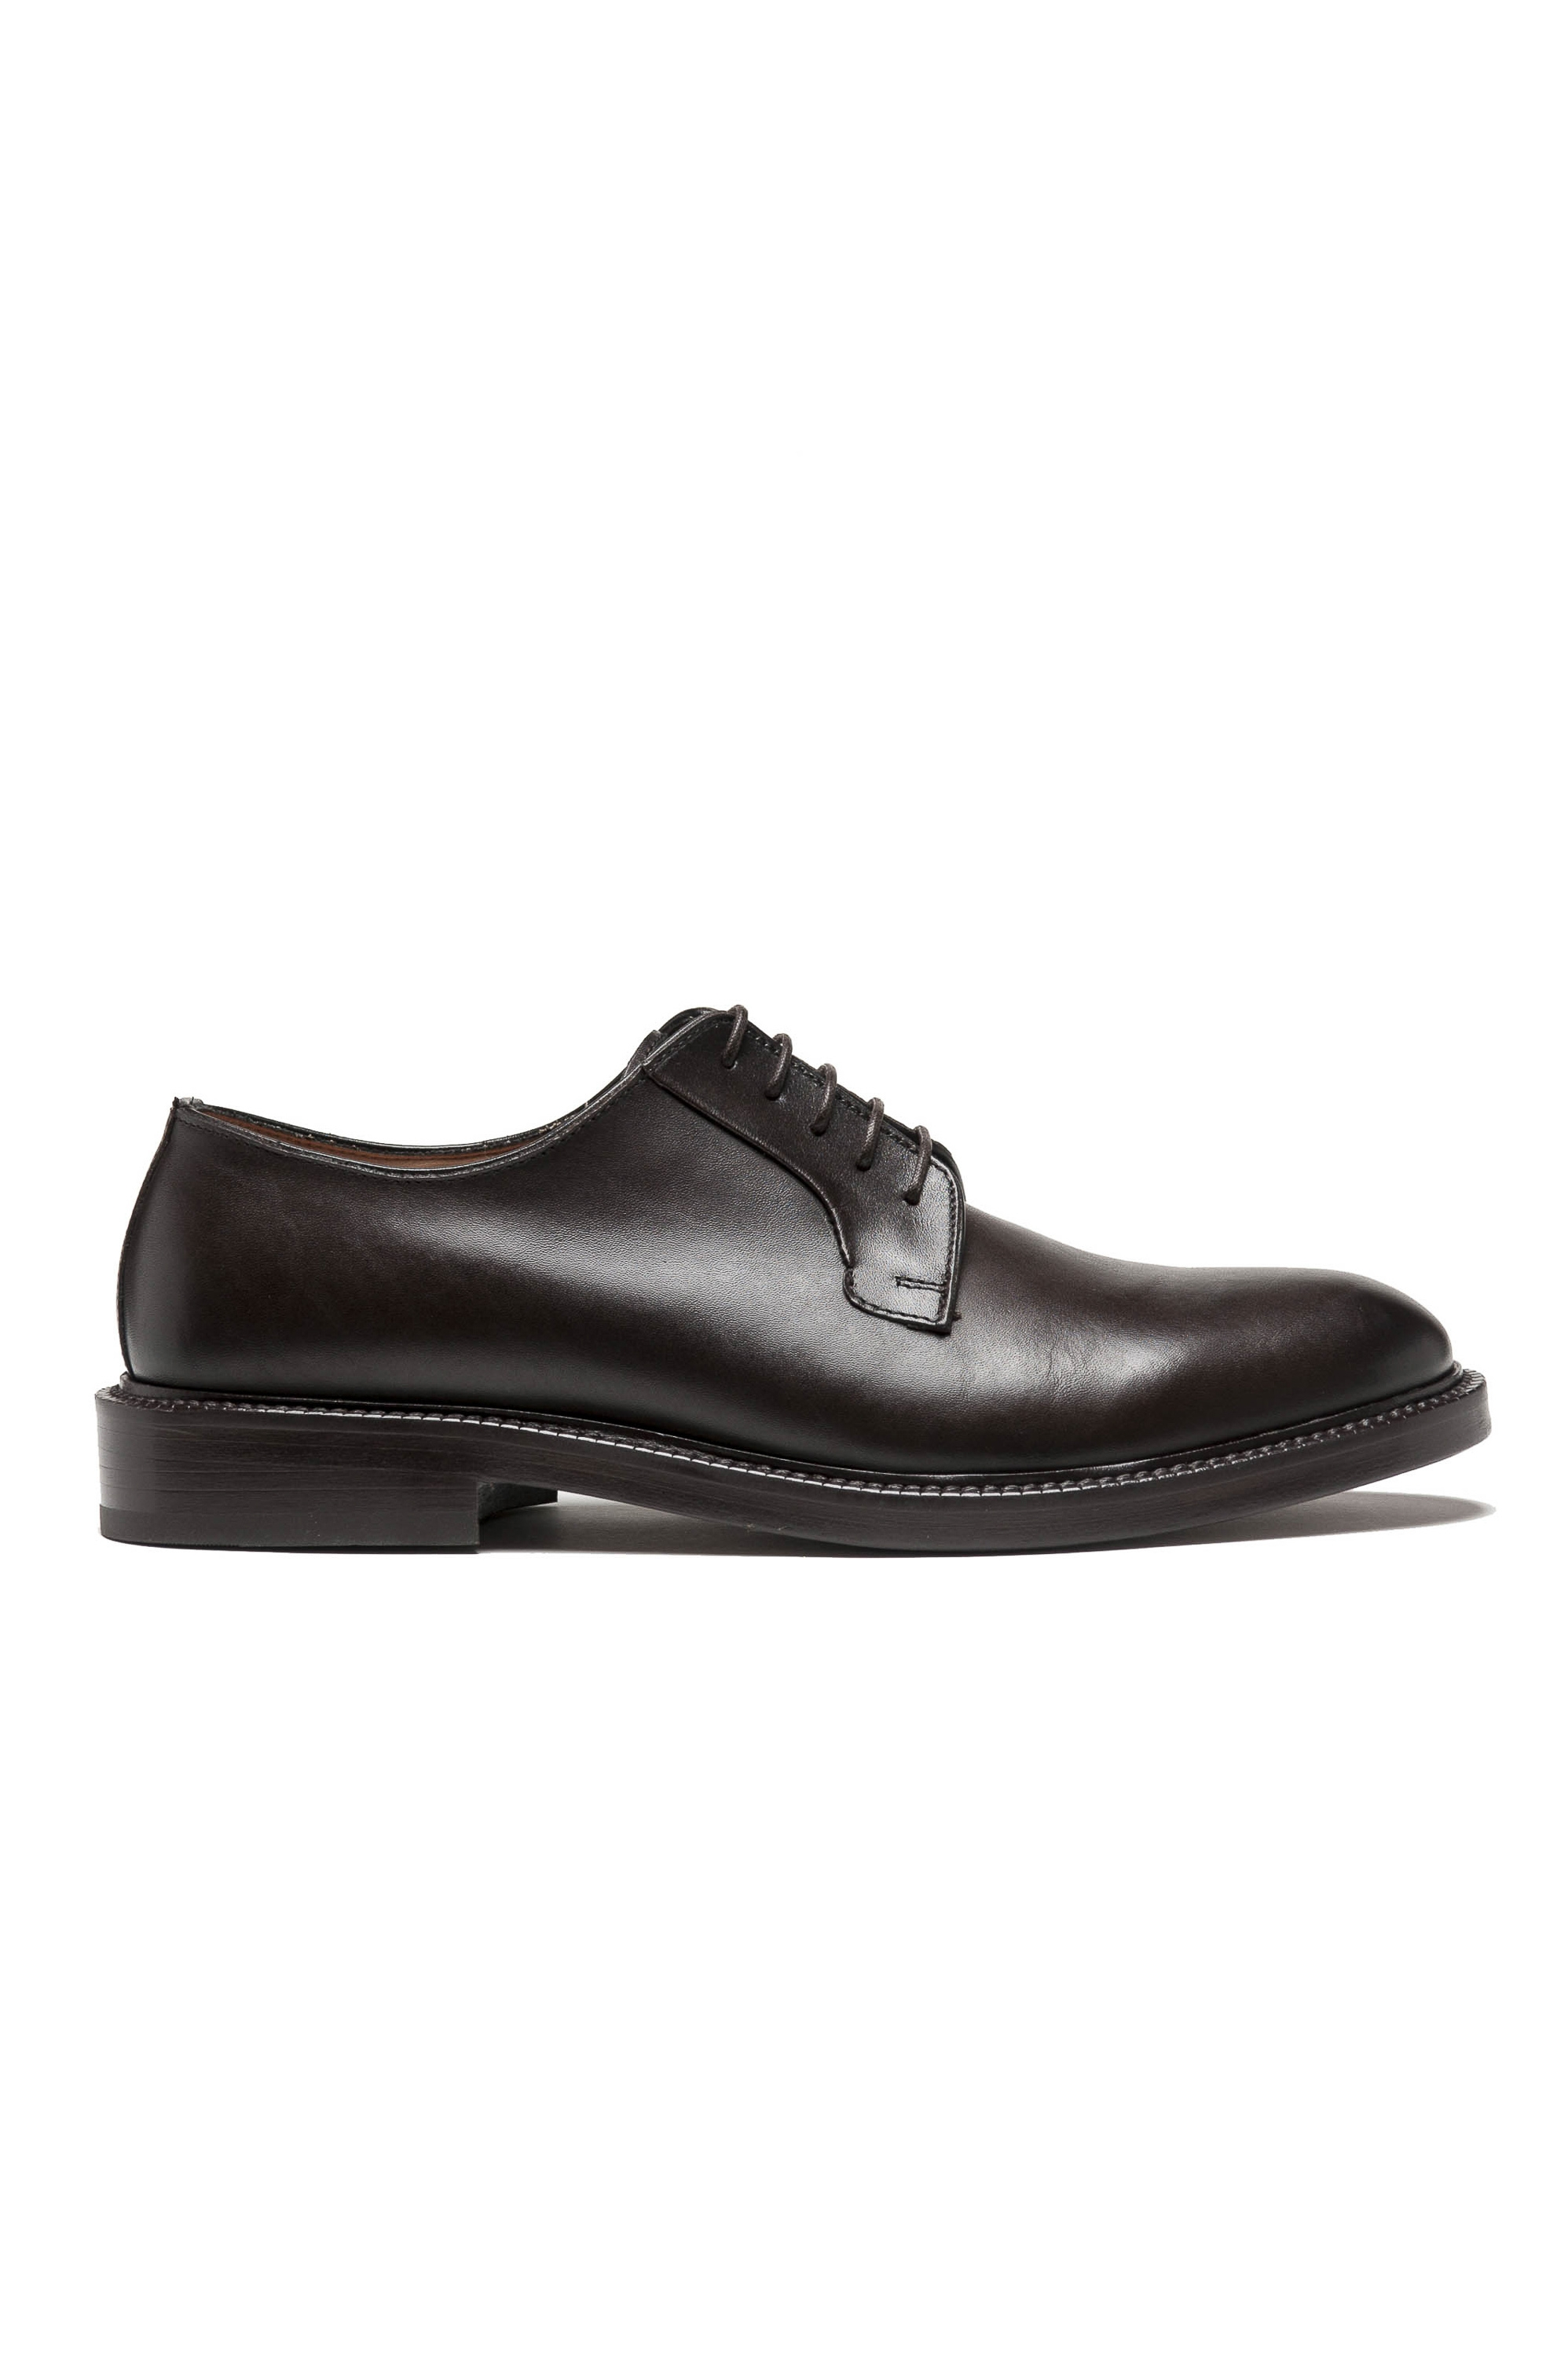 SBU 01503_2020SS Brown lace-up plain calfskin derbies with leather sole 01